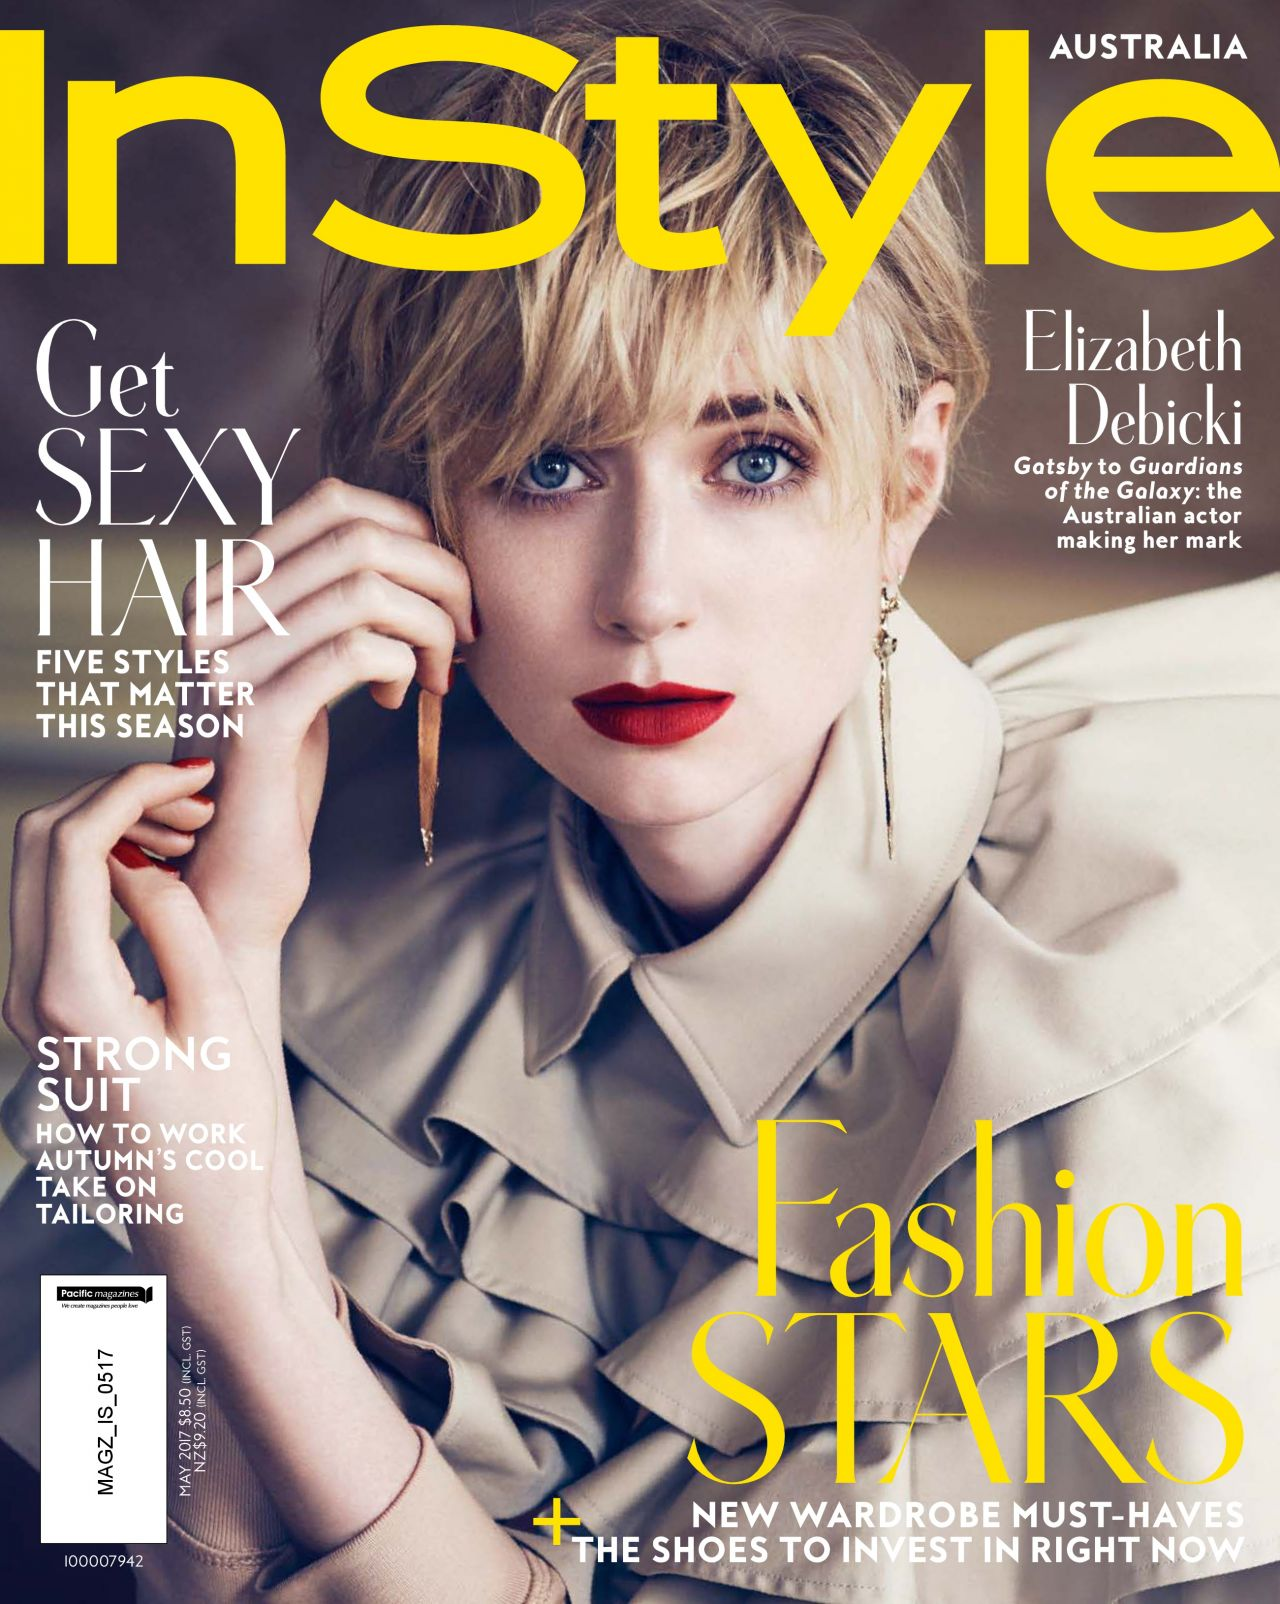 Instyle Magazine Us: InStyle Magazine Australia May 2017 Issue